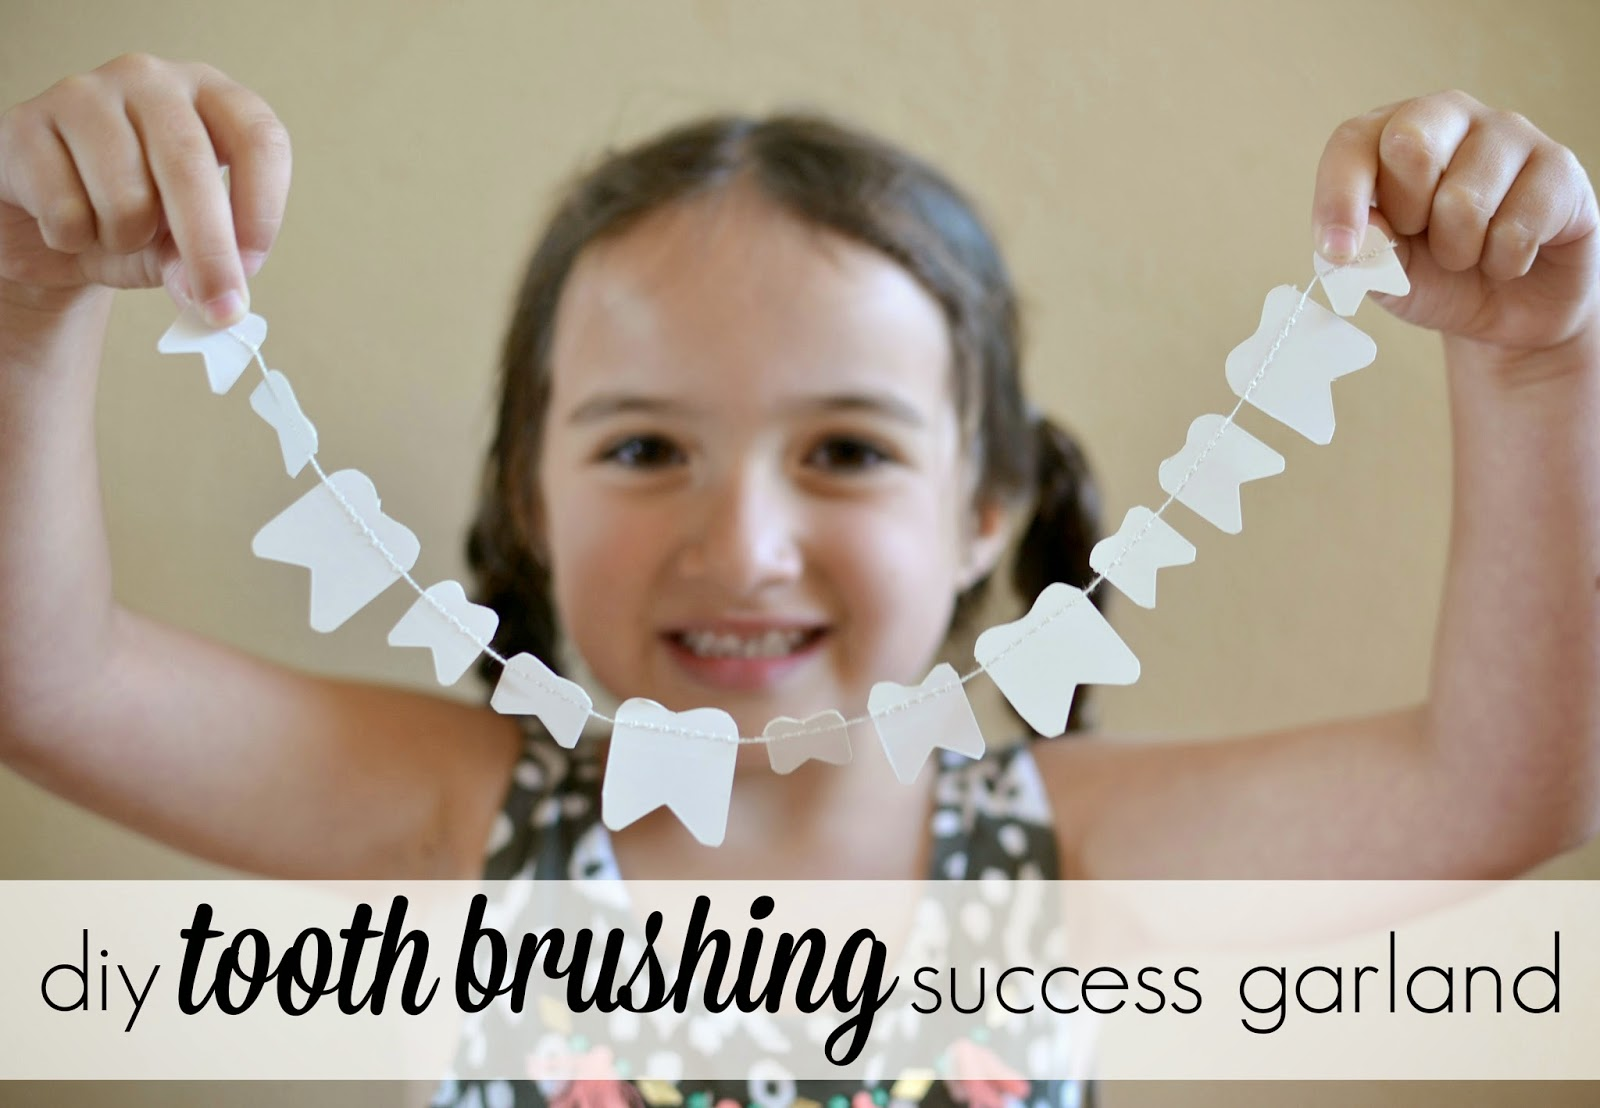 Mommy Testers, Tooth brushing reward chart, Tooth brushing success garland, DIY Tooth Brushing chart, Orajel Kids, #Smilestones